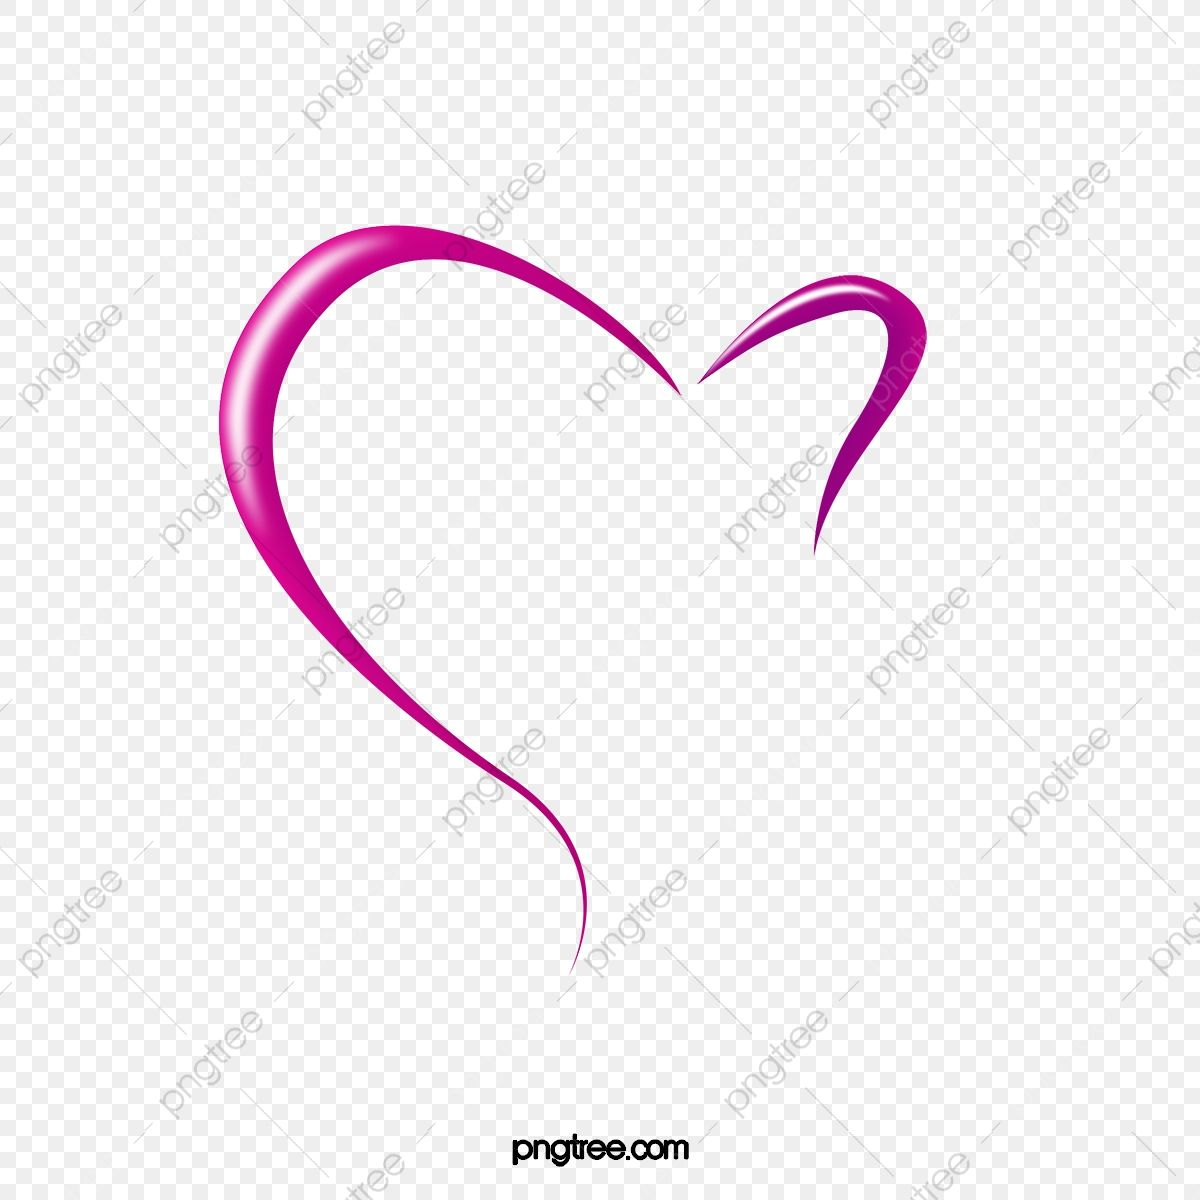 Purple Heart Decorative Pattern Half Heart Outline Heart Clipart Purple Half Heart Png Transparent Clipart Image And Psd File For Free Download Heart Outline Clip Art Heart Clip Art